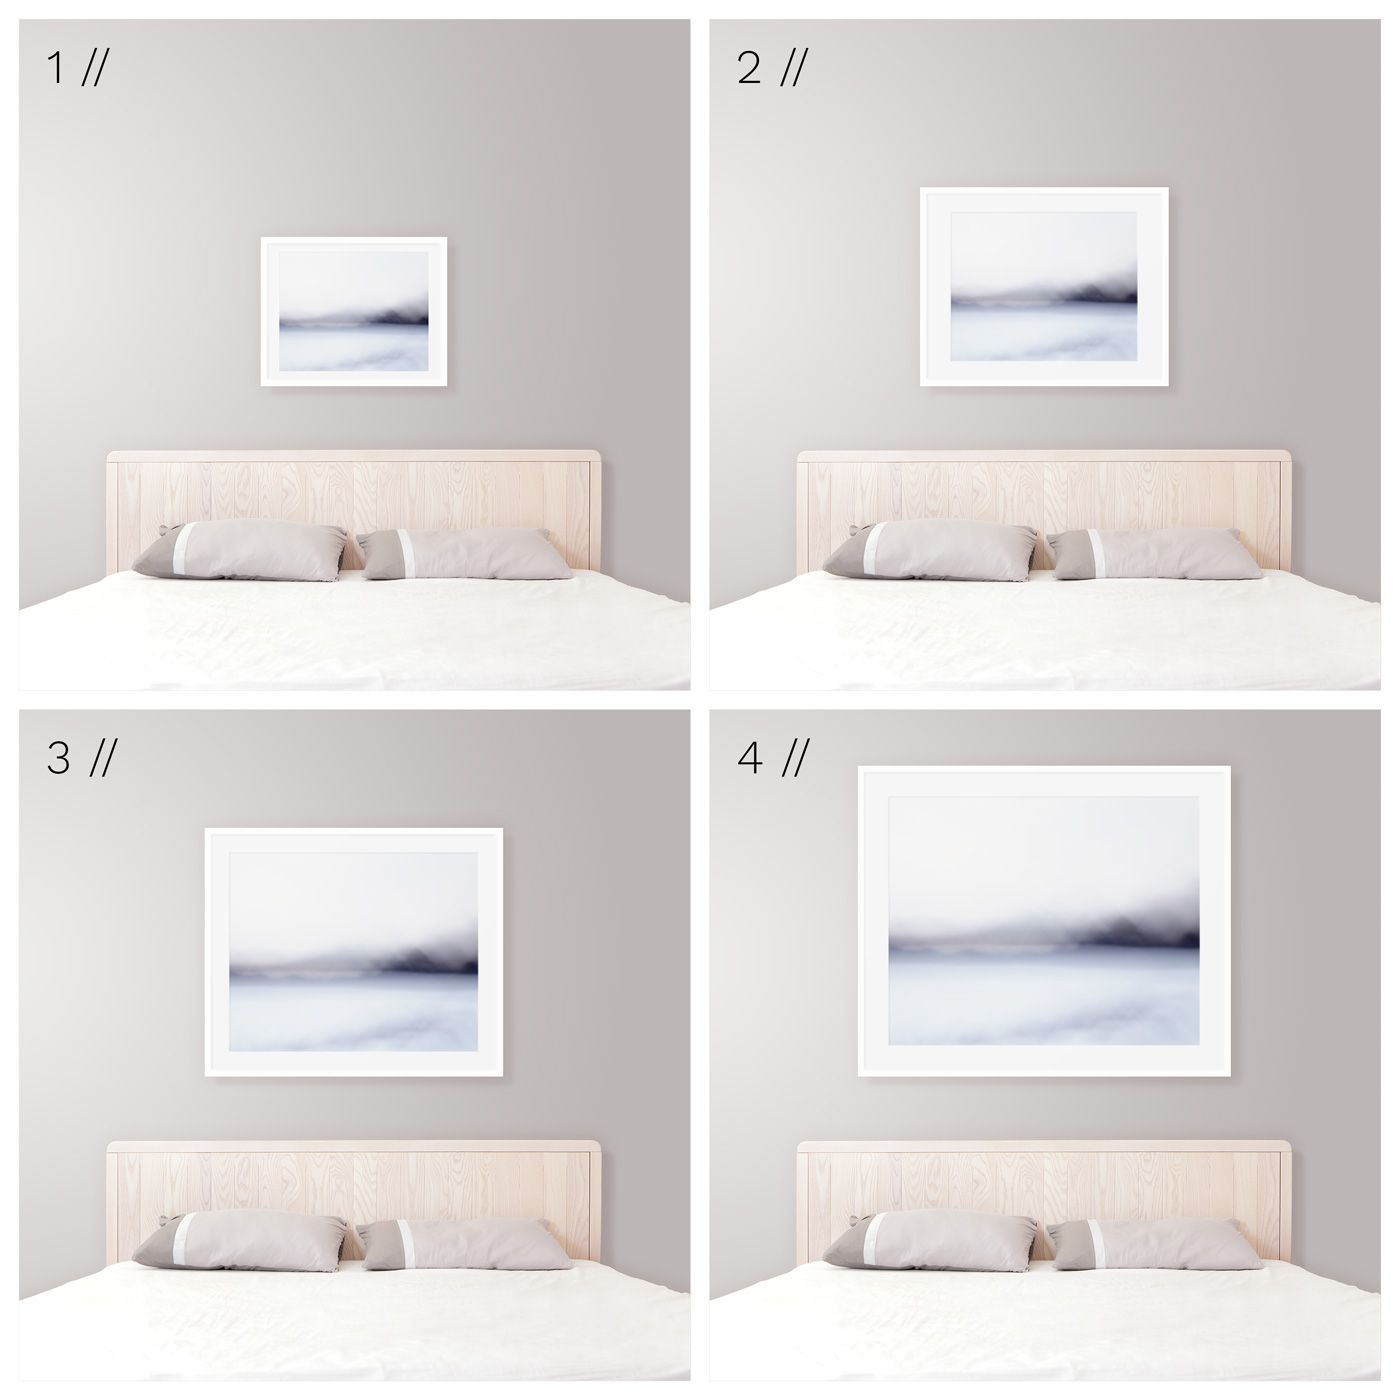 Ideal Art Size Above King Bed Modern Coastal Bedroom Decor Tips Bedrooms